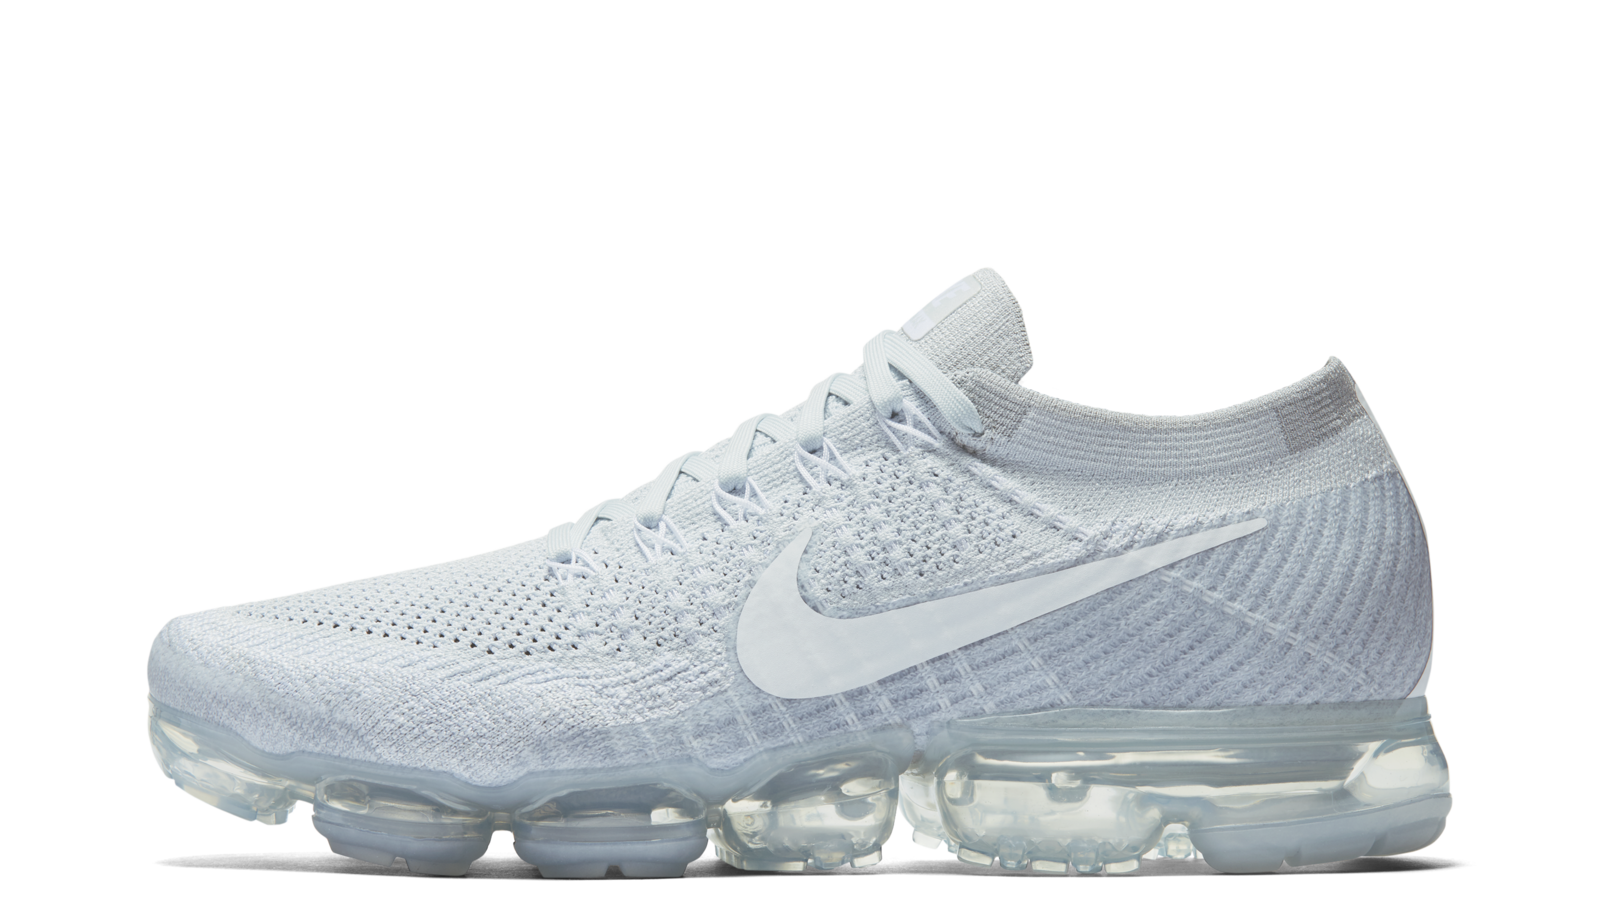 Nike VaporMax Nike Air Vapor Max Trainers at Life Style Sports